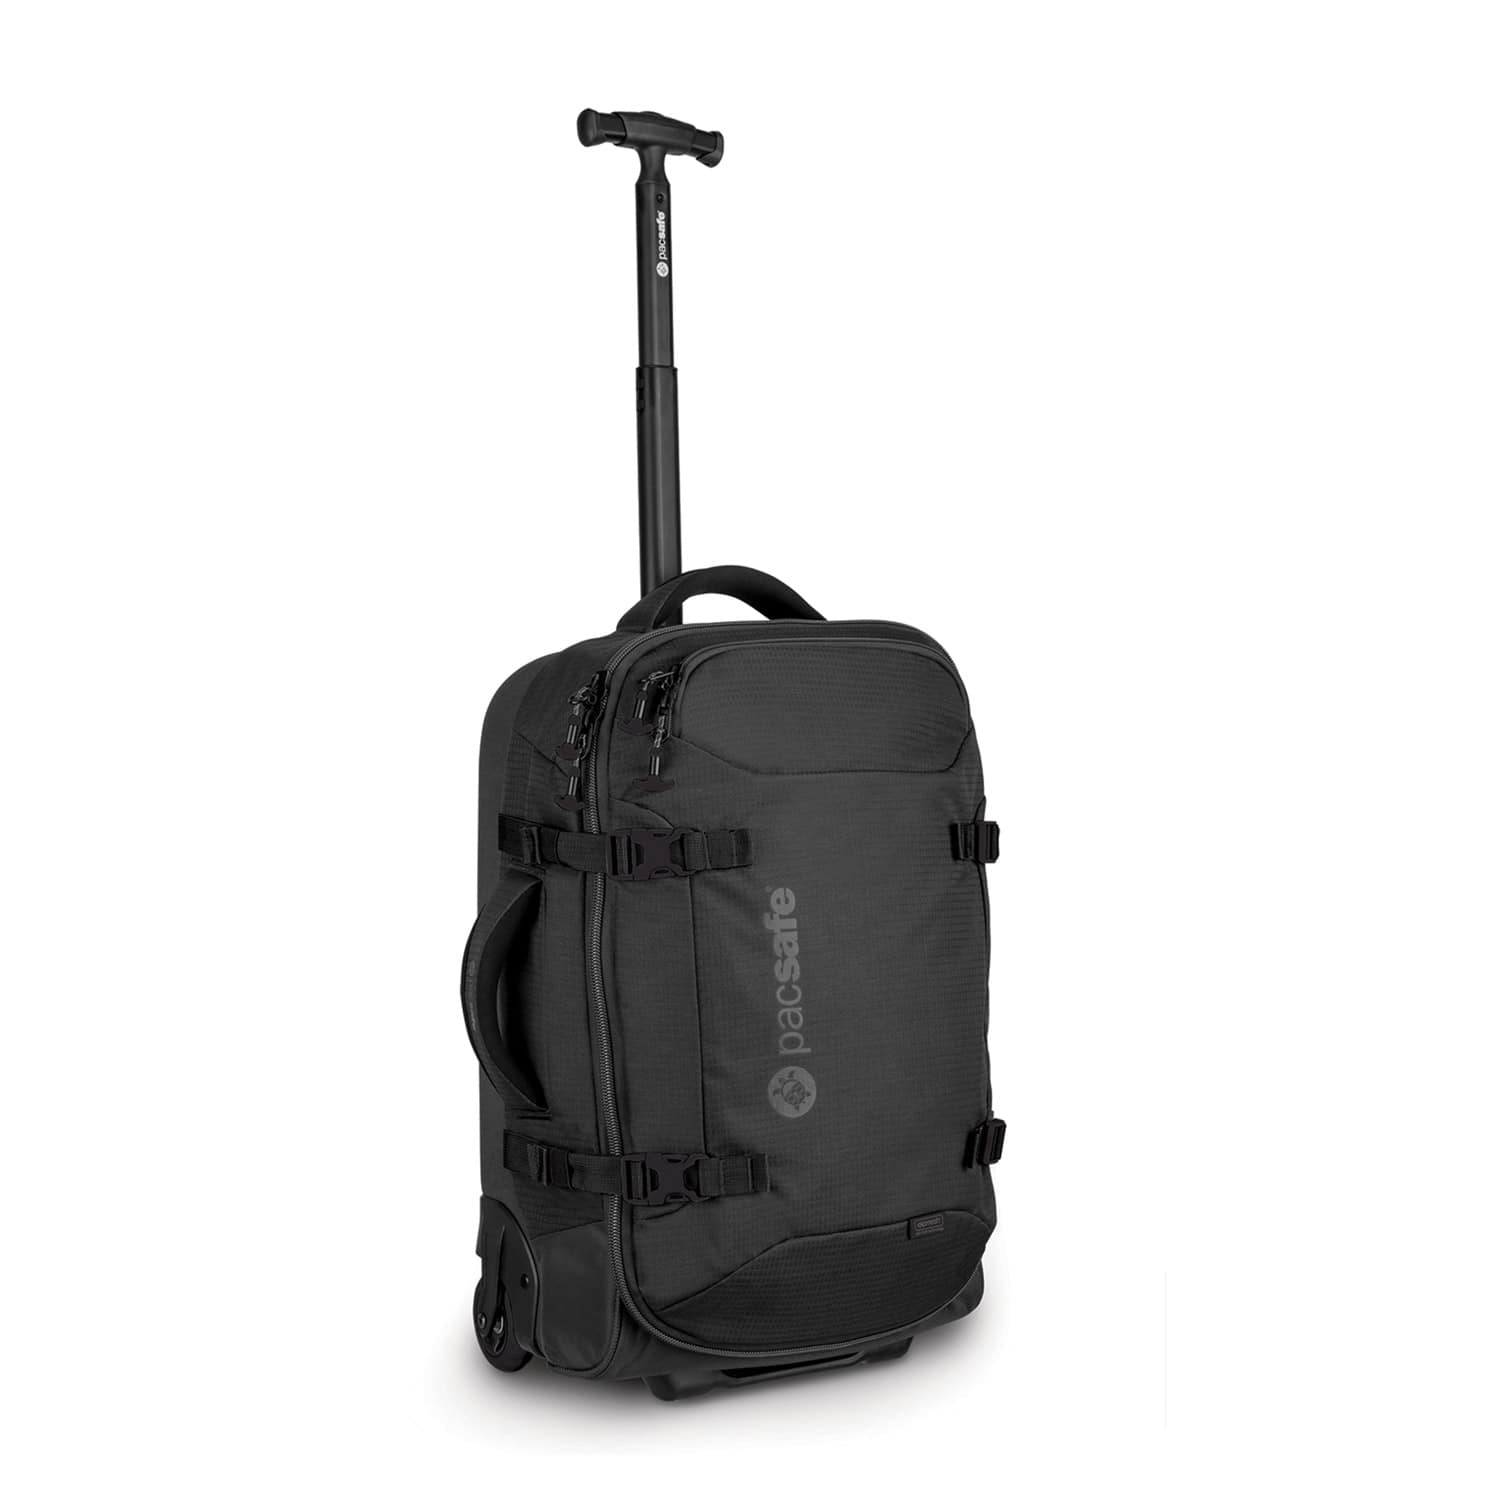 Pacsafe Toursafe AT21 Anti-Theft Rolling Luggage